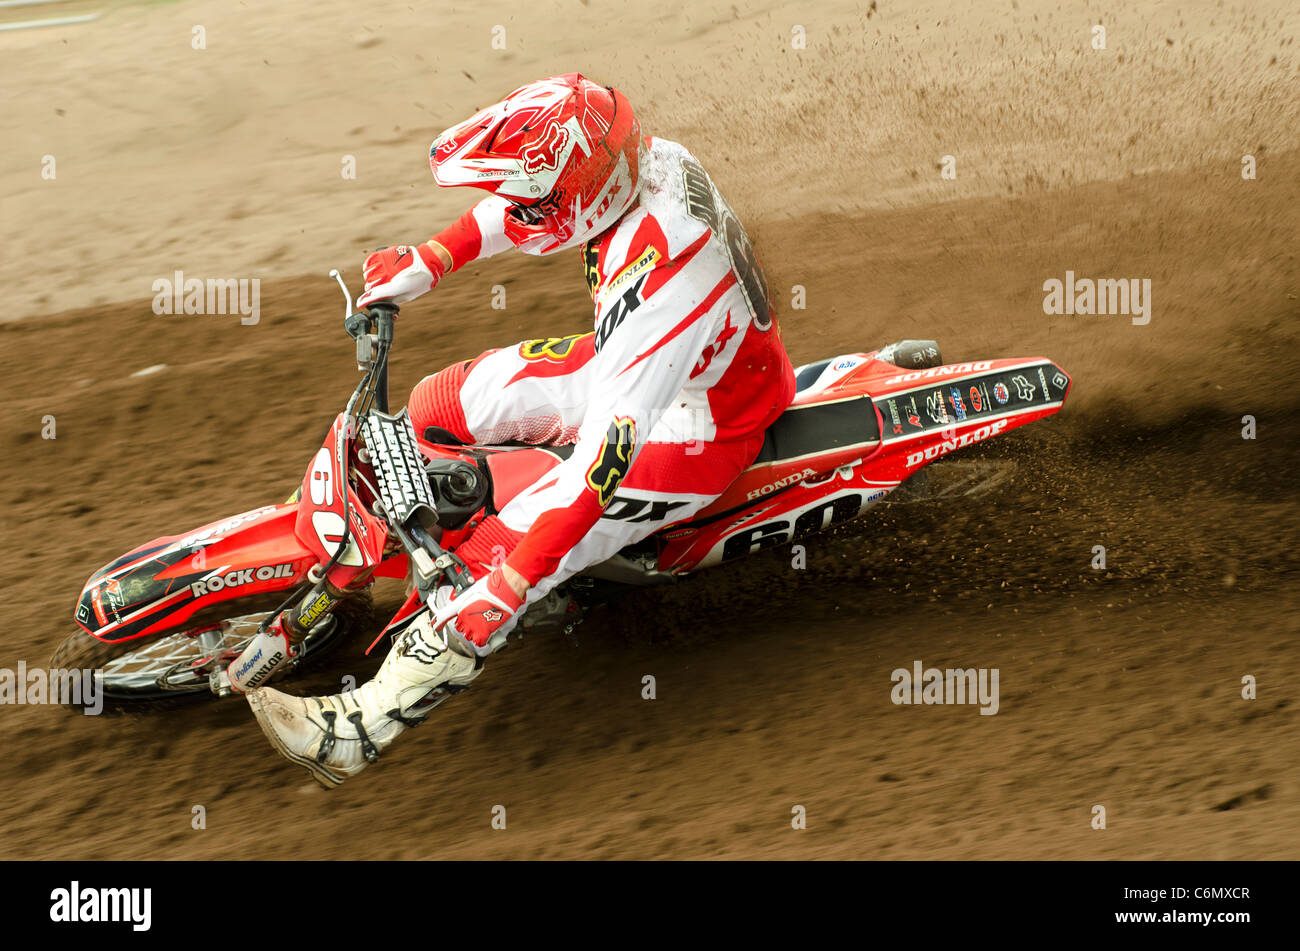 Brad Anderson during the English Motocross championship, 2011 - Stock Image